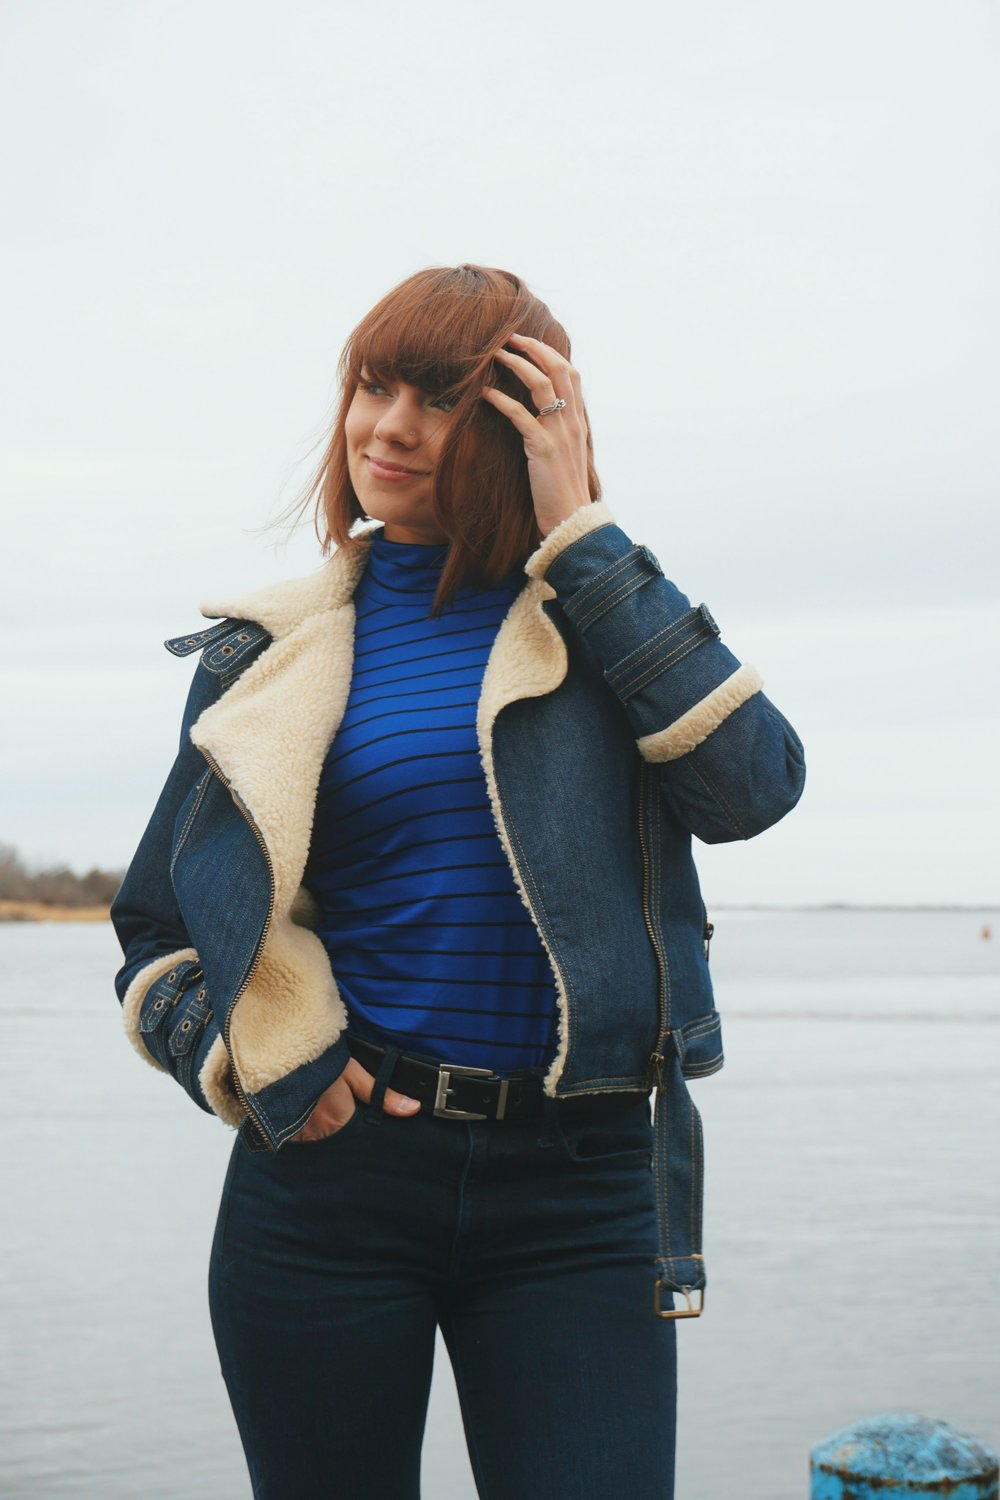 Outfit inspiration: blue turtleneck with black stripes, denim winter jacket, and express jeans.